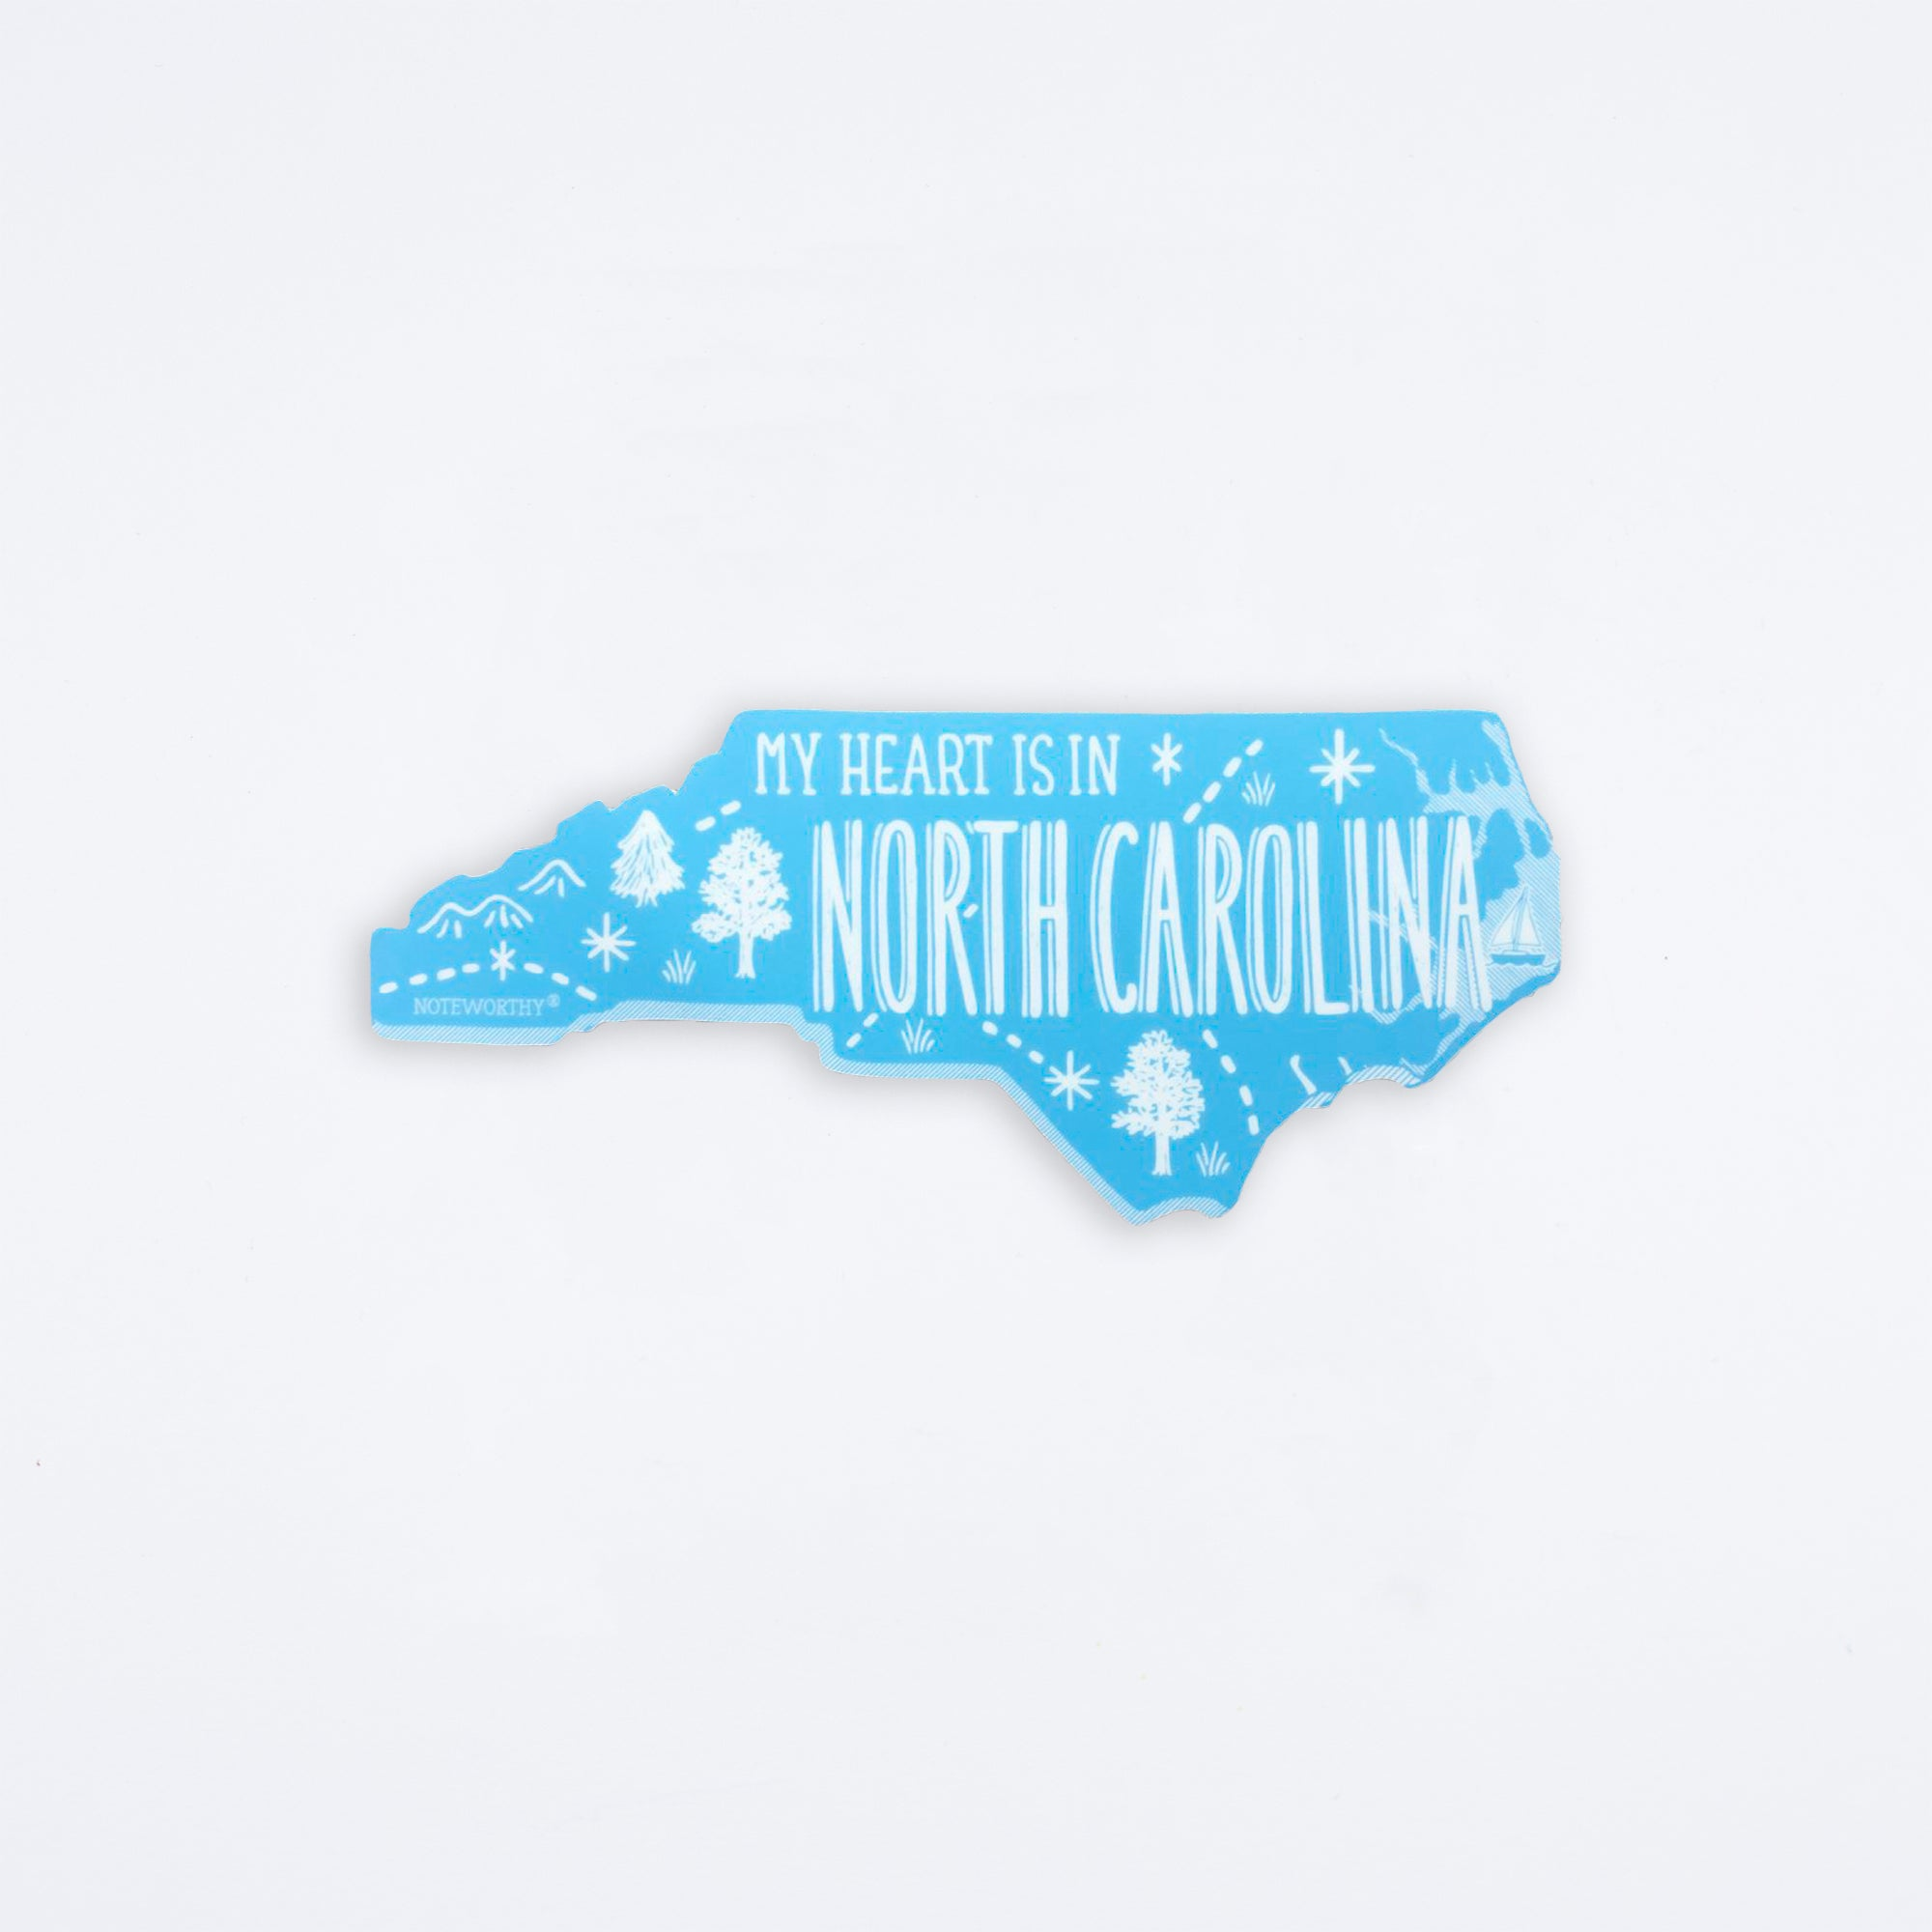 North Carolina Die Cut Vinyl Sticker